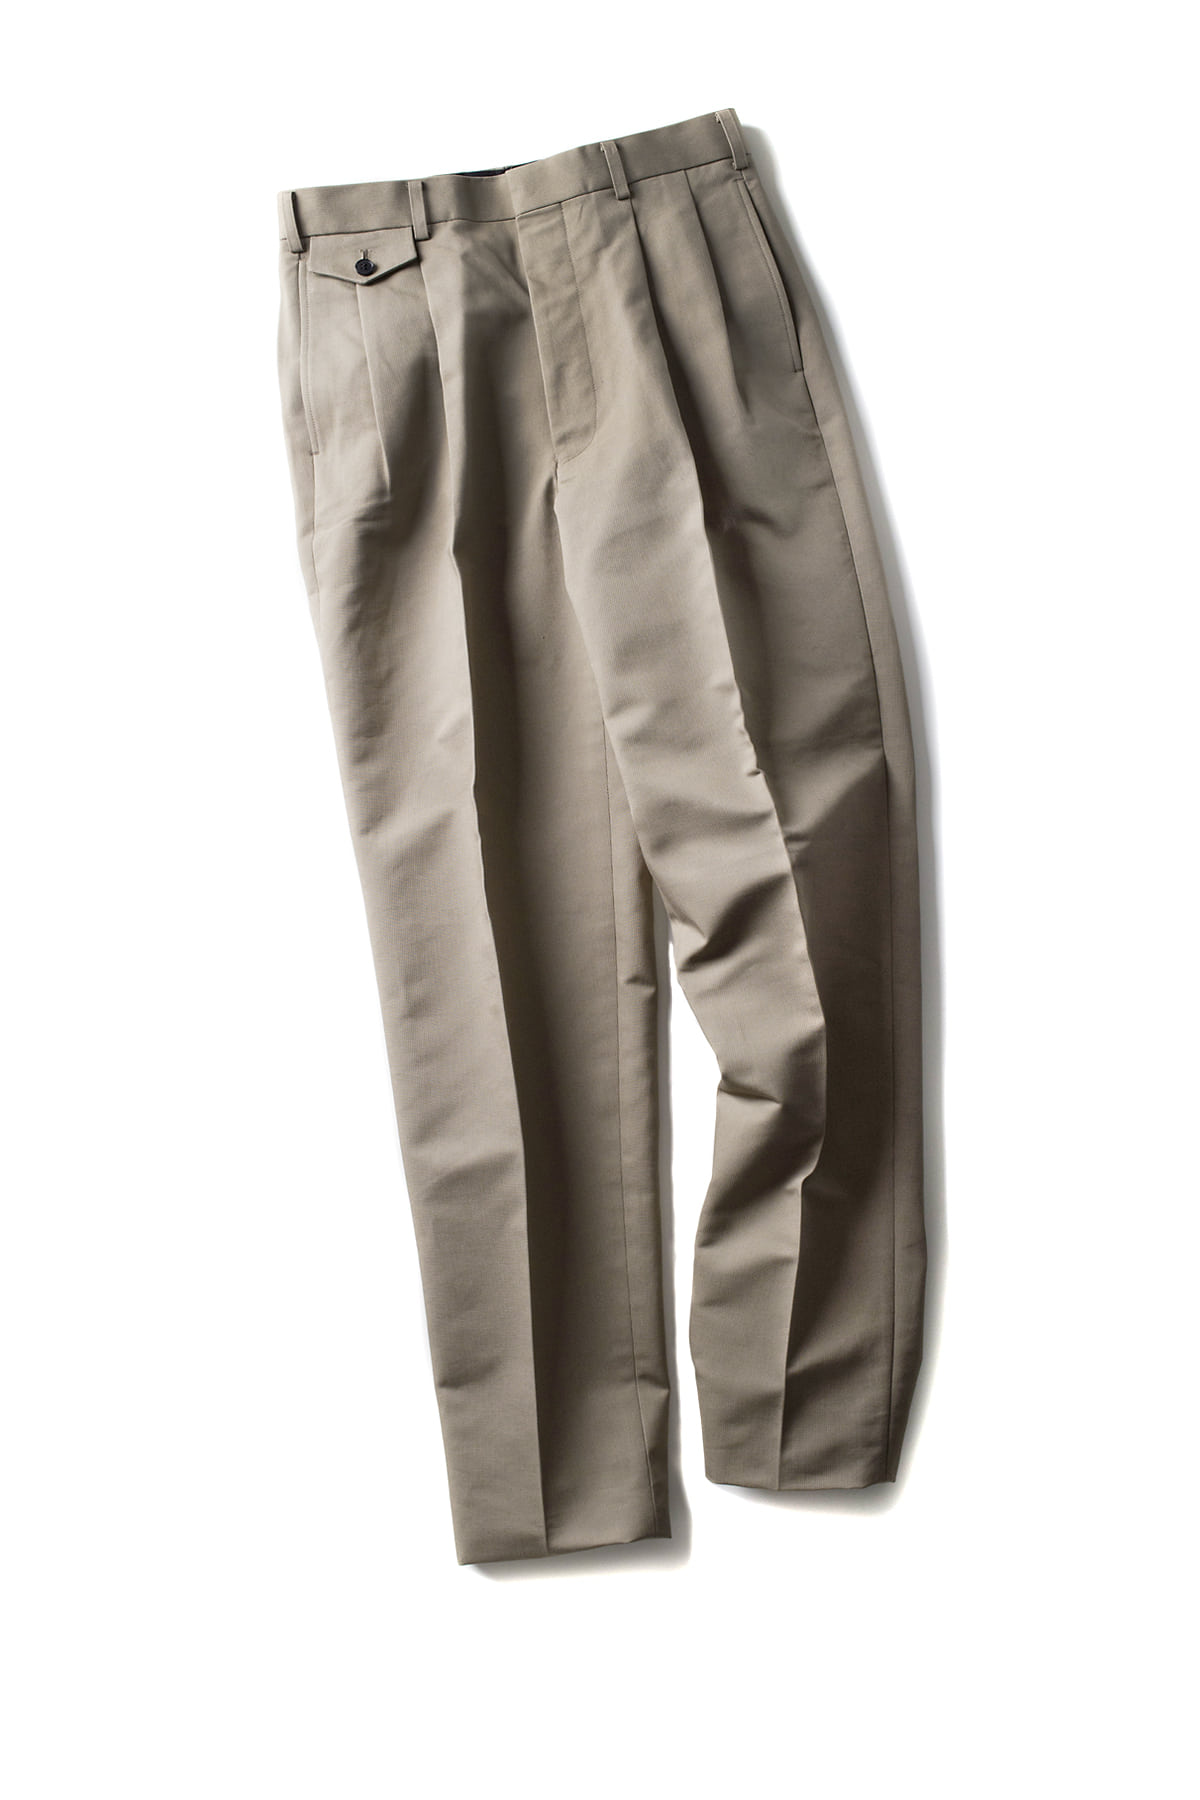 JOHN LAWRENCE SULLIVAN : 2Pleat Trousers (Beige)